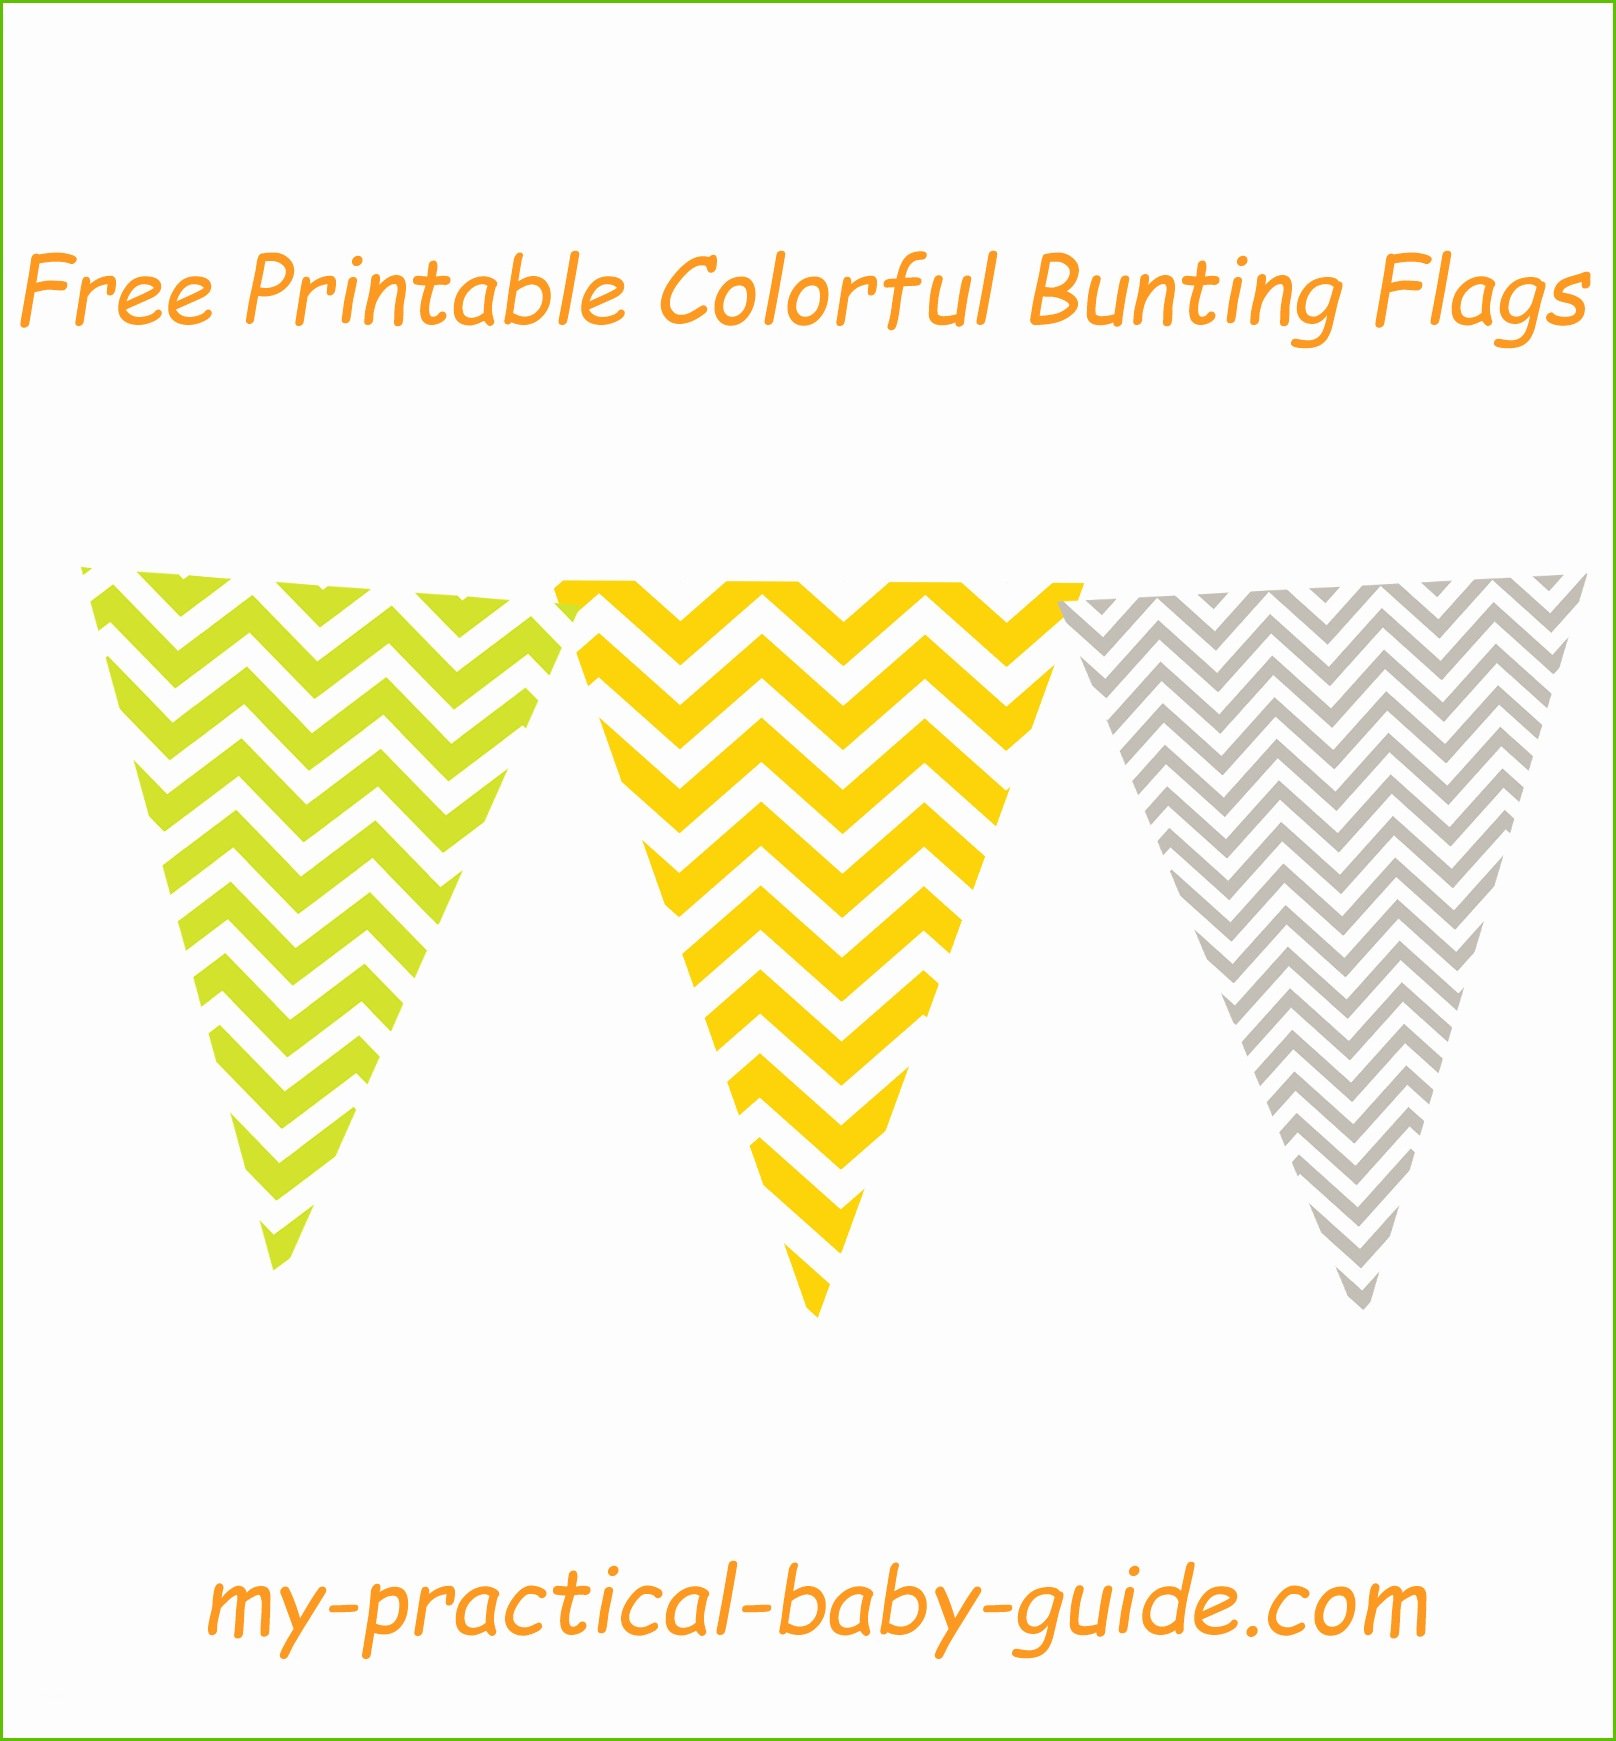 Full Size of Baby Shower:89+ Indulging Baby Shower Banner Picture Inspirations Baby Shower Banner Printable Elegant Elephant Baby Shower Banner Baby Shower Banner Printable Awesome Free Printable Colorful Chevron Bunting Flags Lime Green